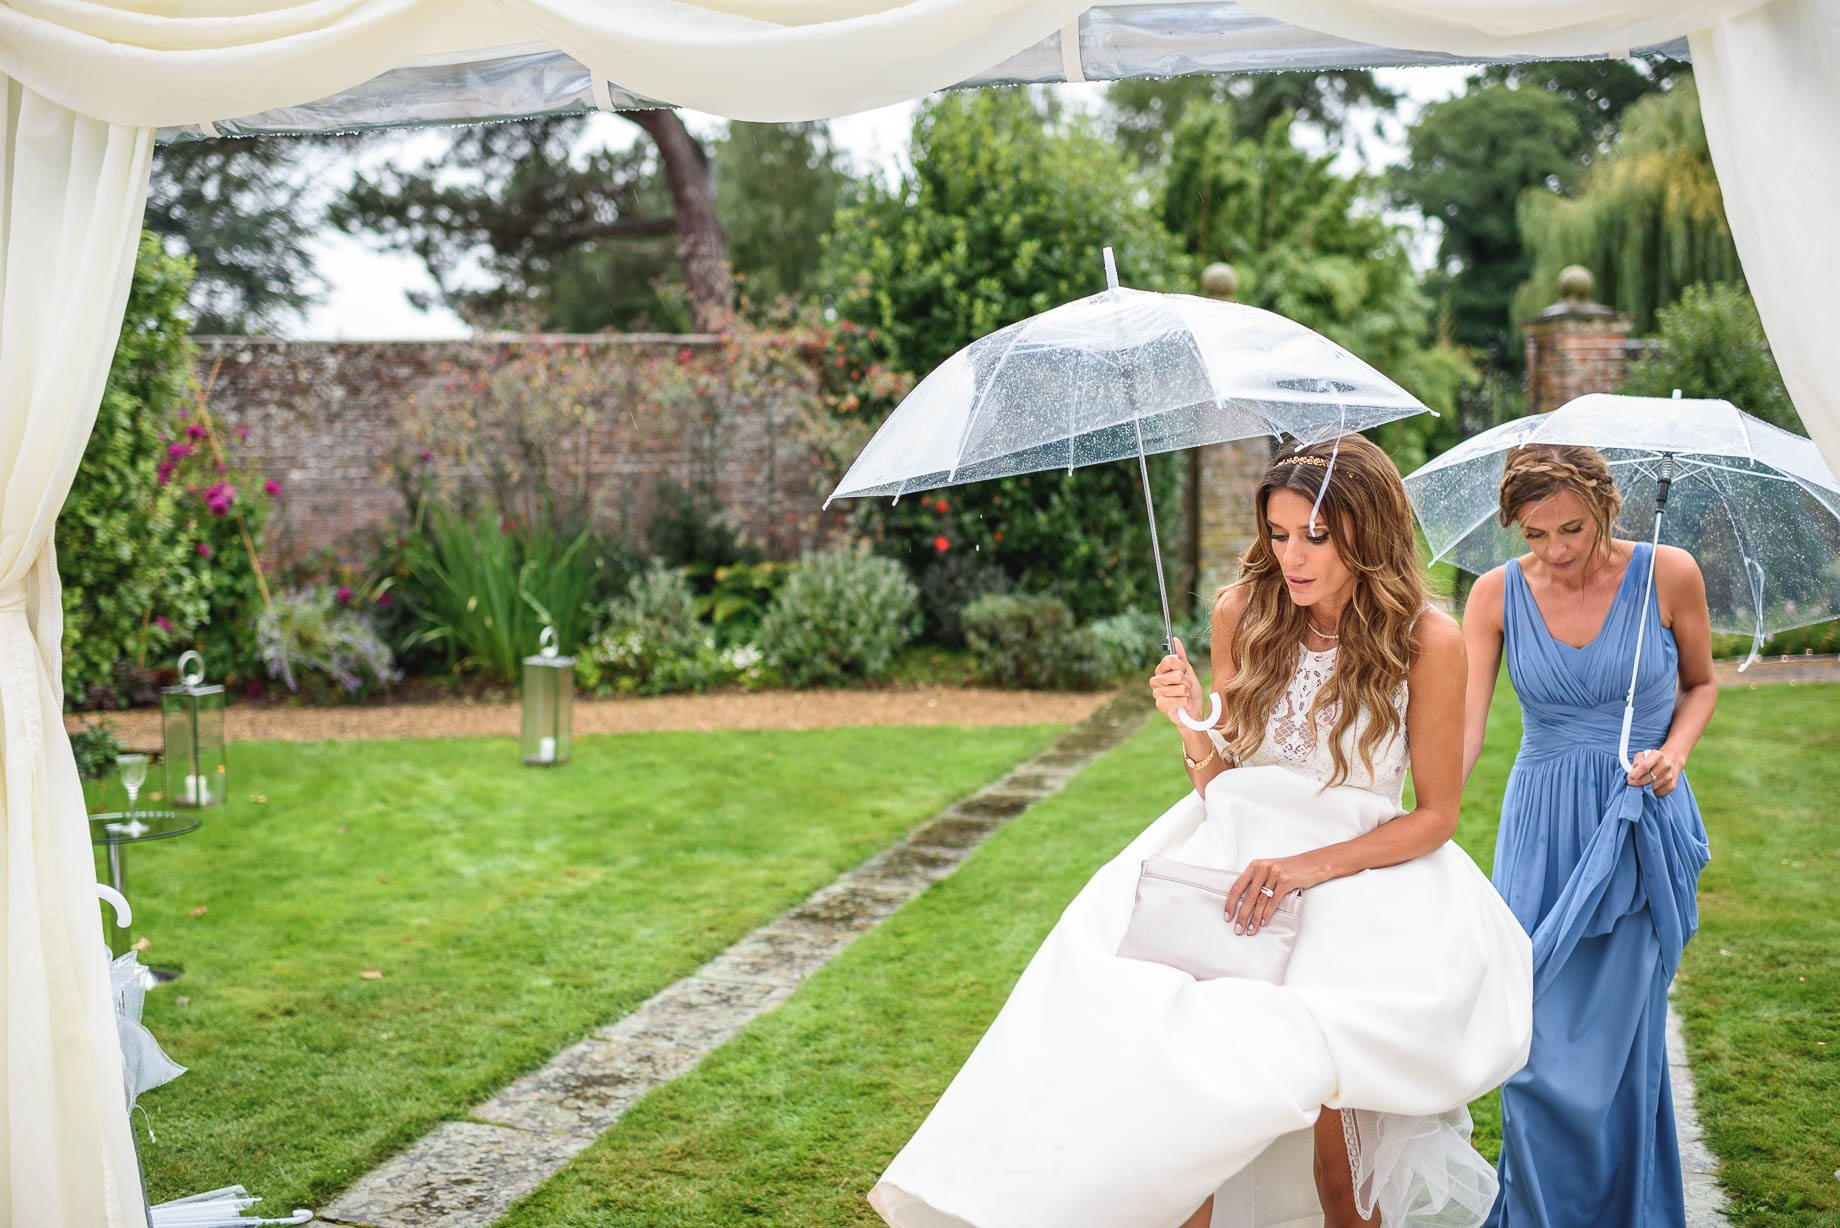 surrey-wedding-photography-guy-collier-photography-claire-and-tom-178-of-227